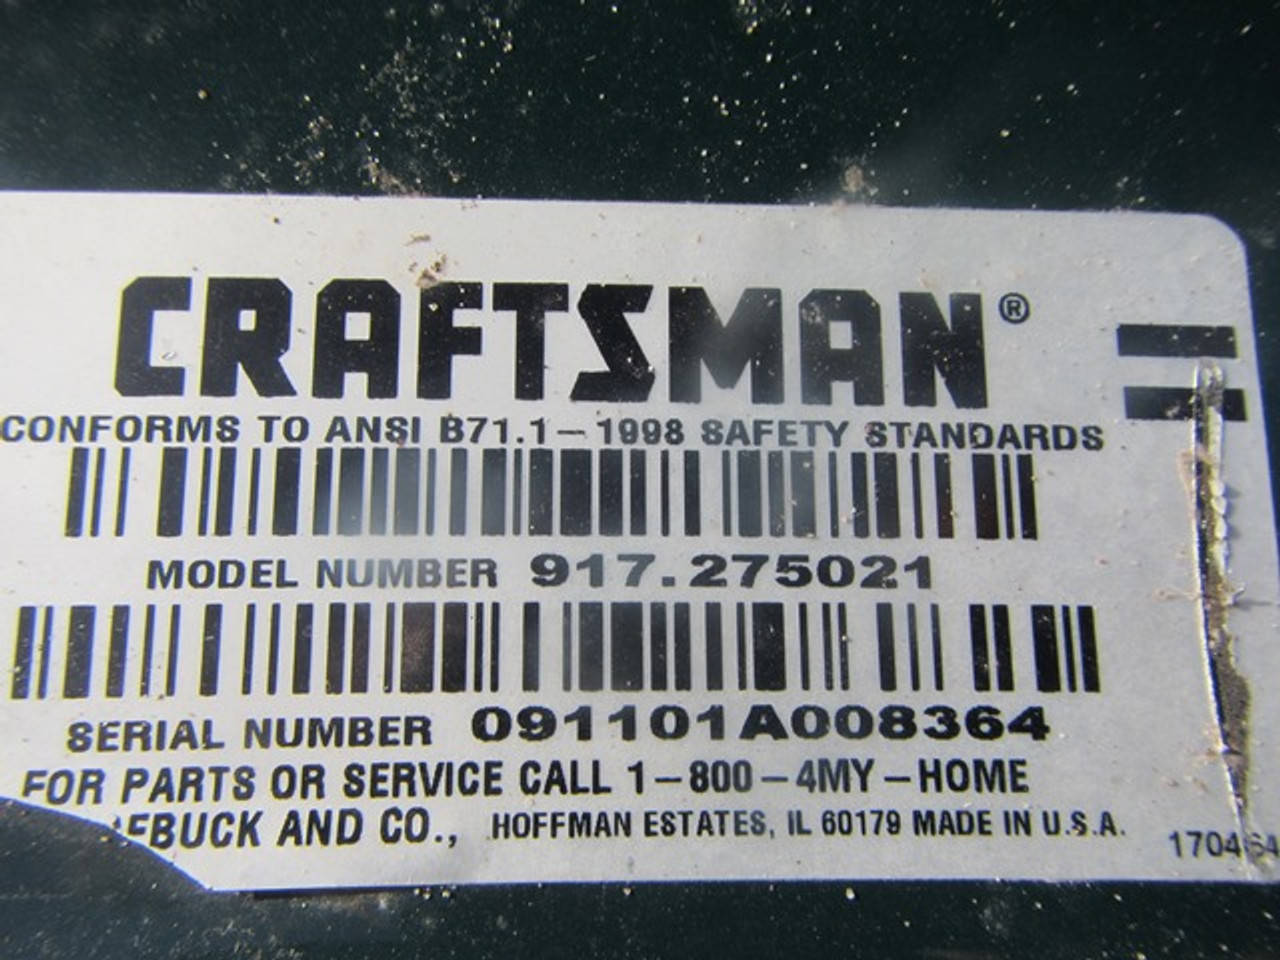 Sears Craftsman GT-3000 - 008364